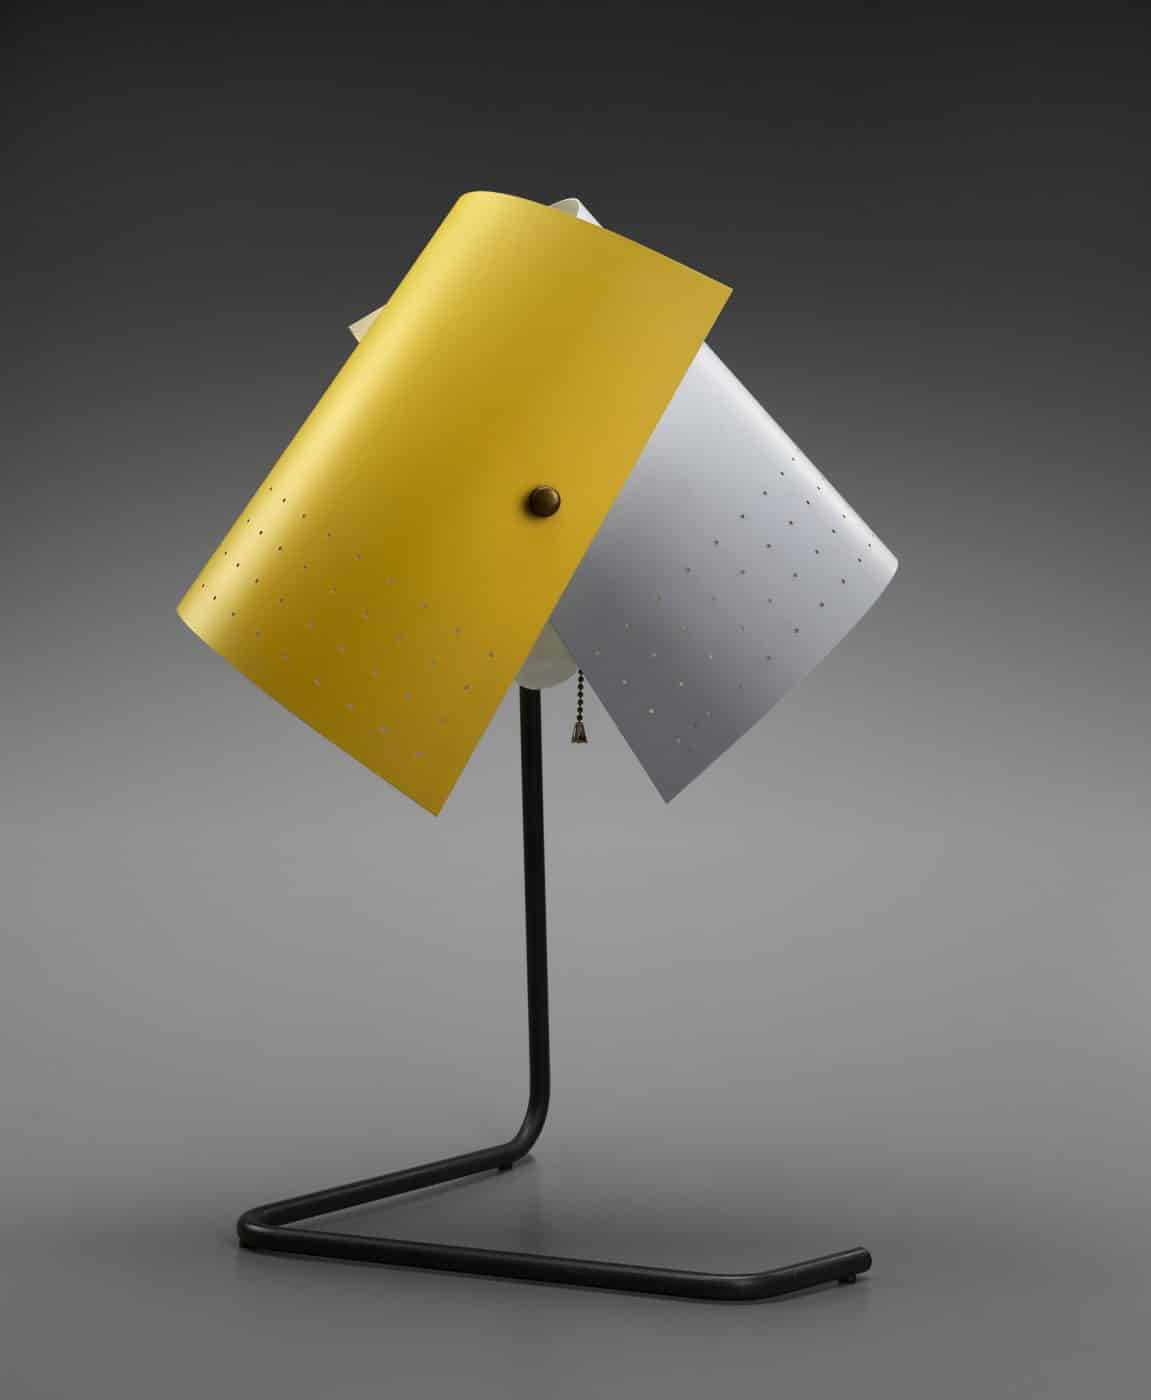 """Lester Geis's T-5-G adjustable table lamp, from """"Electrifying Design: A Century of Lighting,"""" at the Museum of Fine Arts, Houston"""